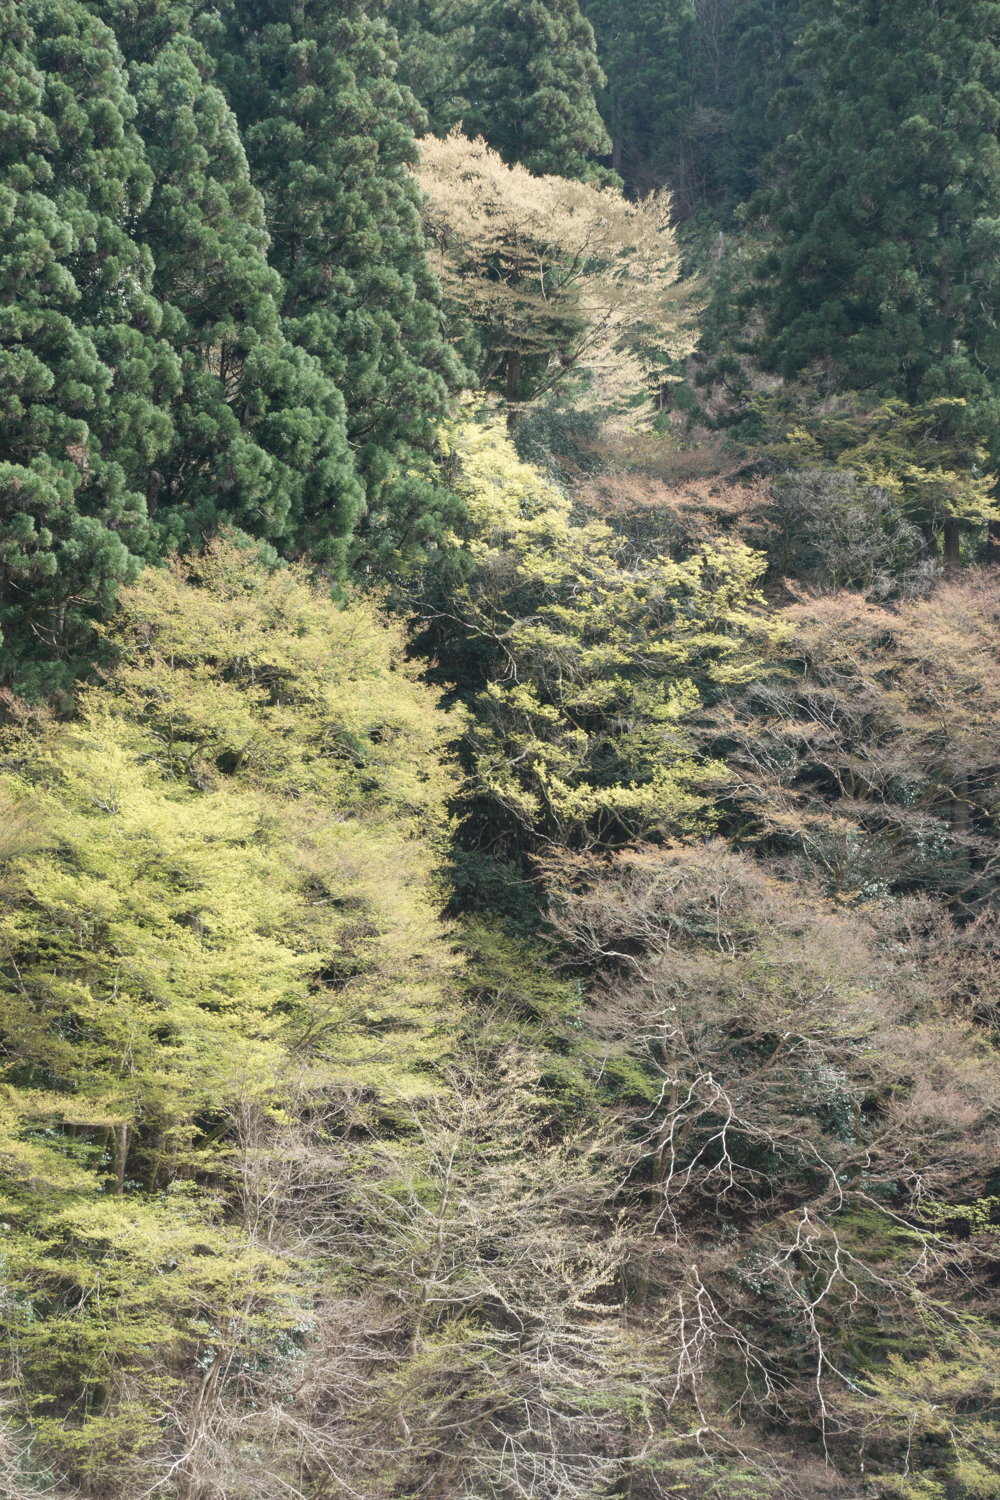 """<a href =""""/work/japan"""">Japan<strong>Travel photo series from Japan.</strong></a>"""